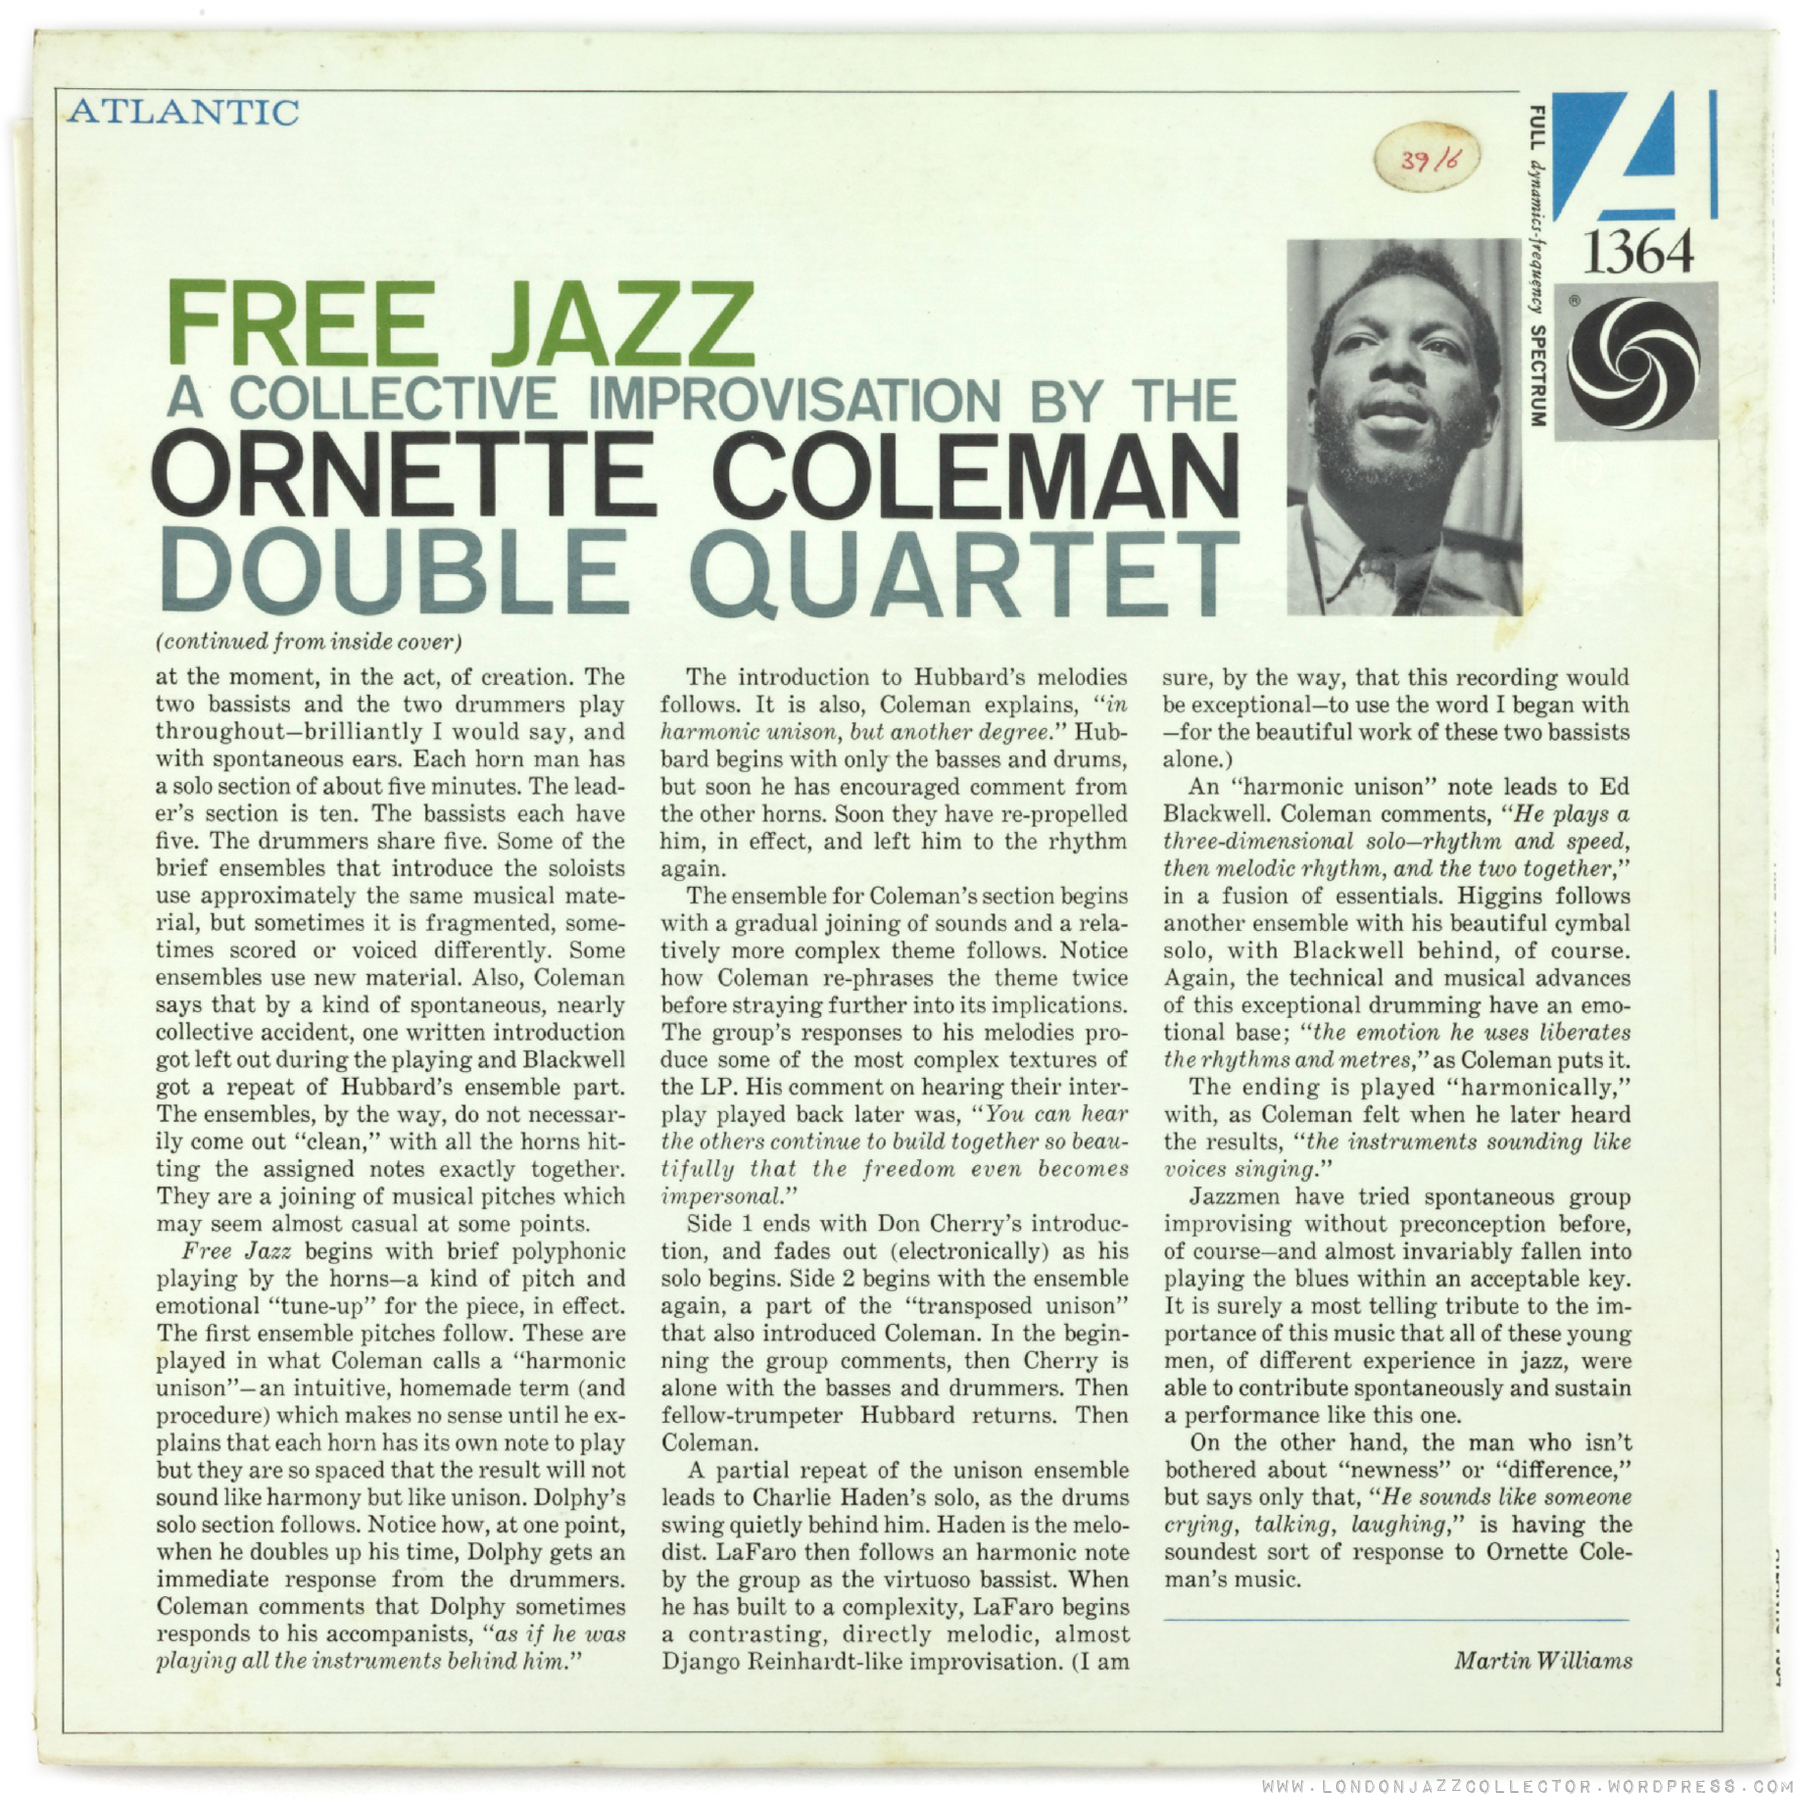 ornette coleman paper An academic thesis exploring the evolution of john coltrane's avant garde jazz style by close analysis of four recordings of 'my favorite things' between 1960 and 1965.